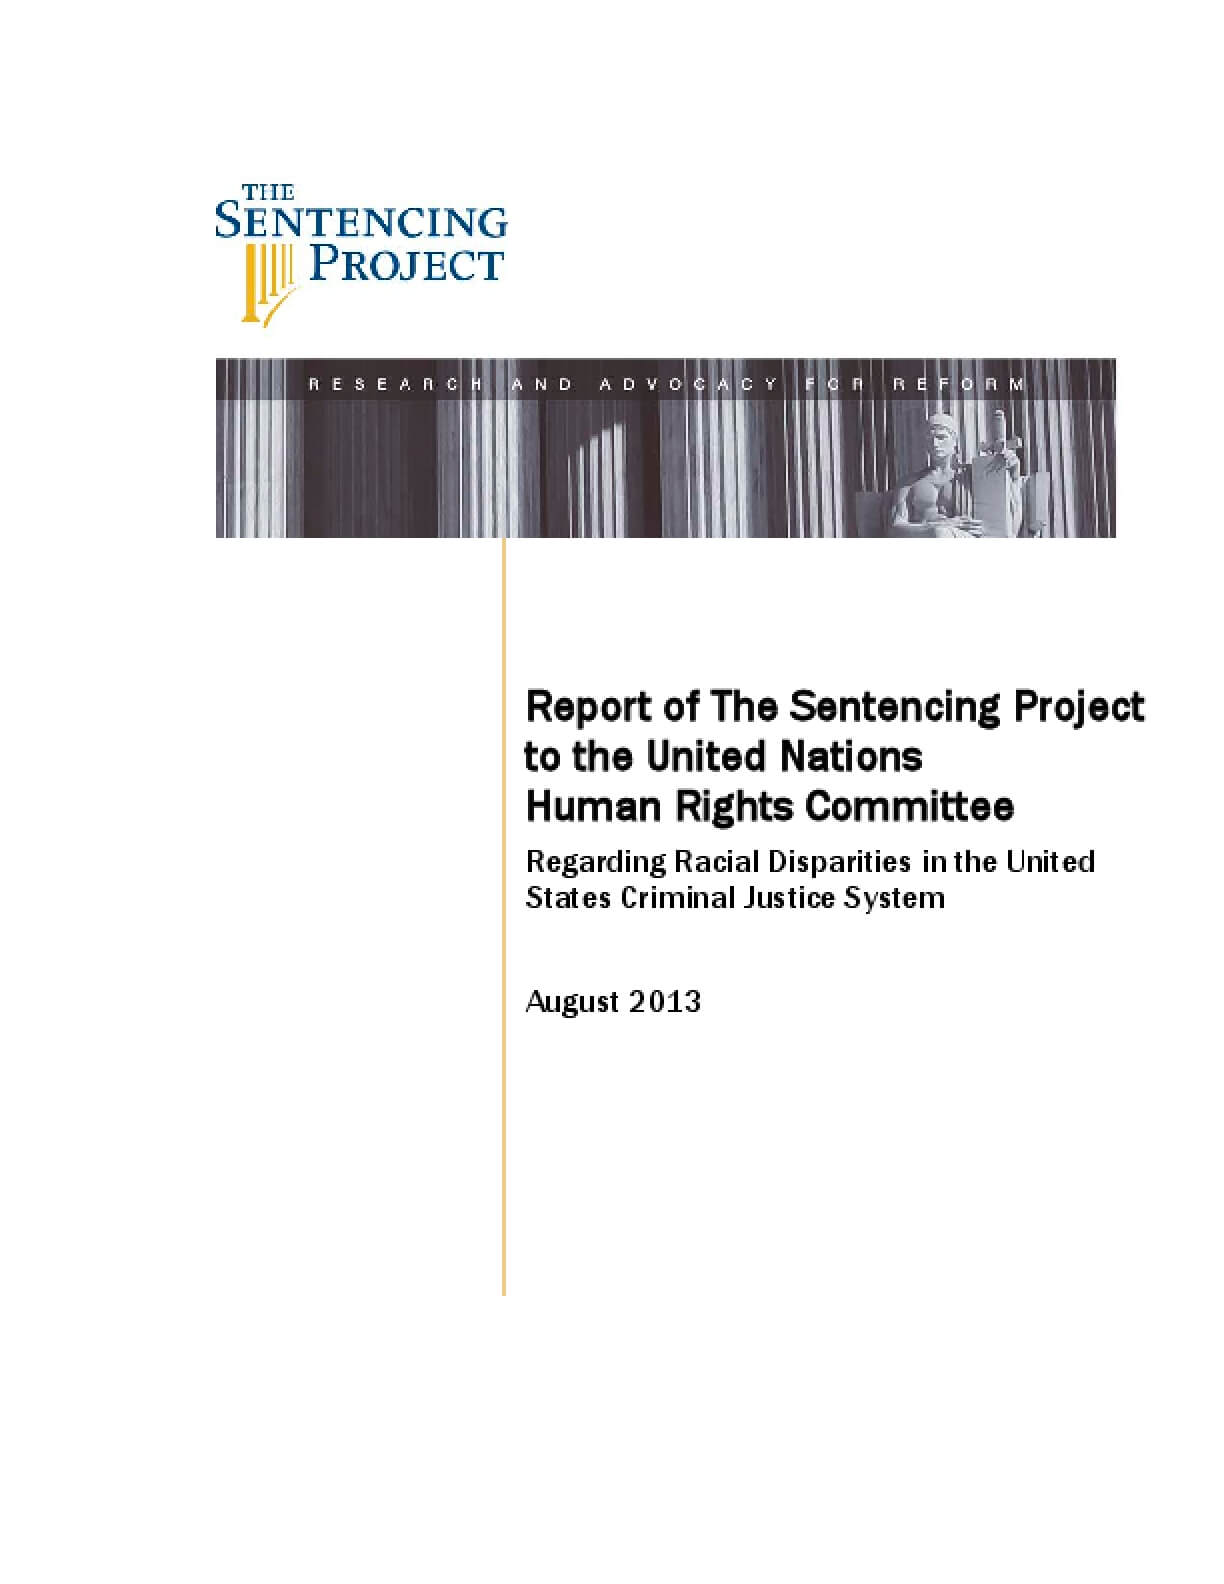 Report of The Sentencing Project to the United Nations Human Rights Committee Regarding Racial Disparities in the United States Criminal Justice System